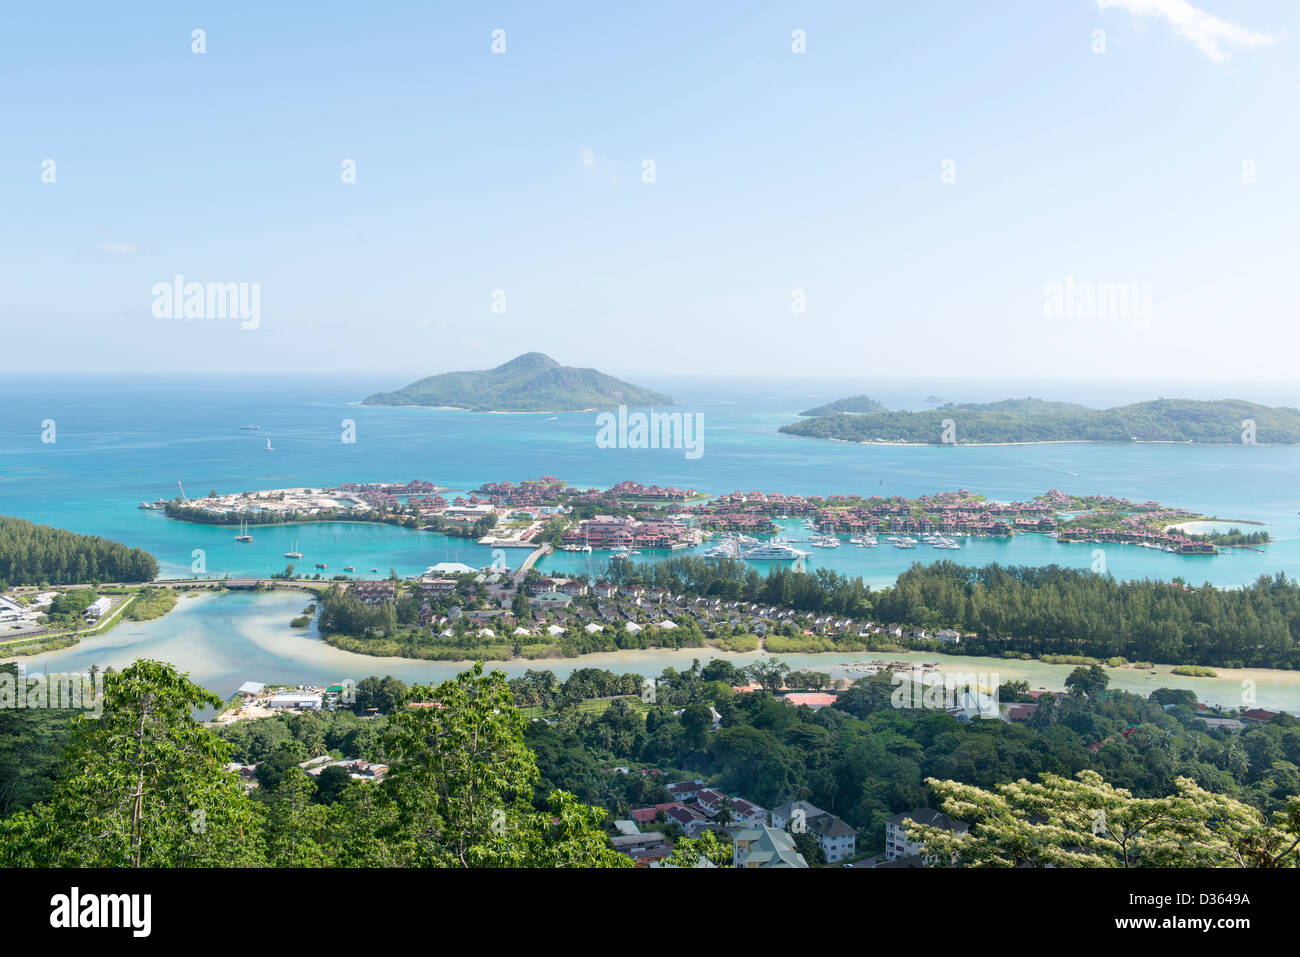 Aerial view on the coastline of the Seychelles Islands and luxury Eden Island from Victoria viewpoint, Mahe - Stock Image